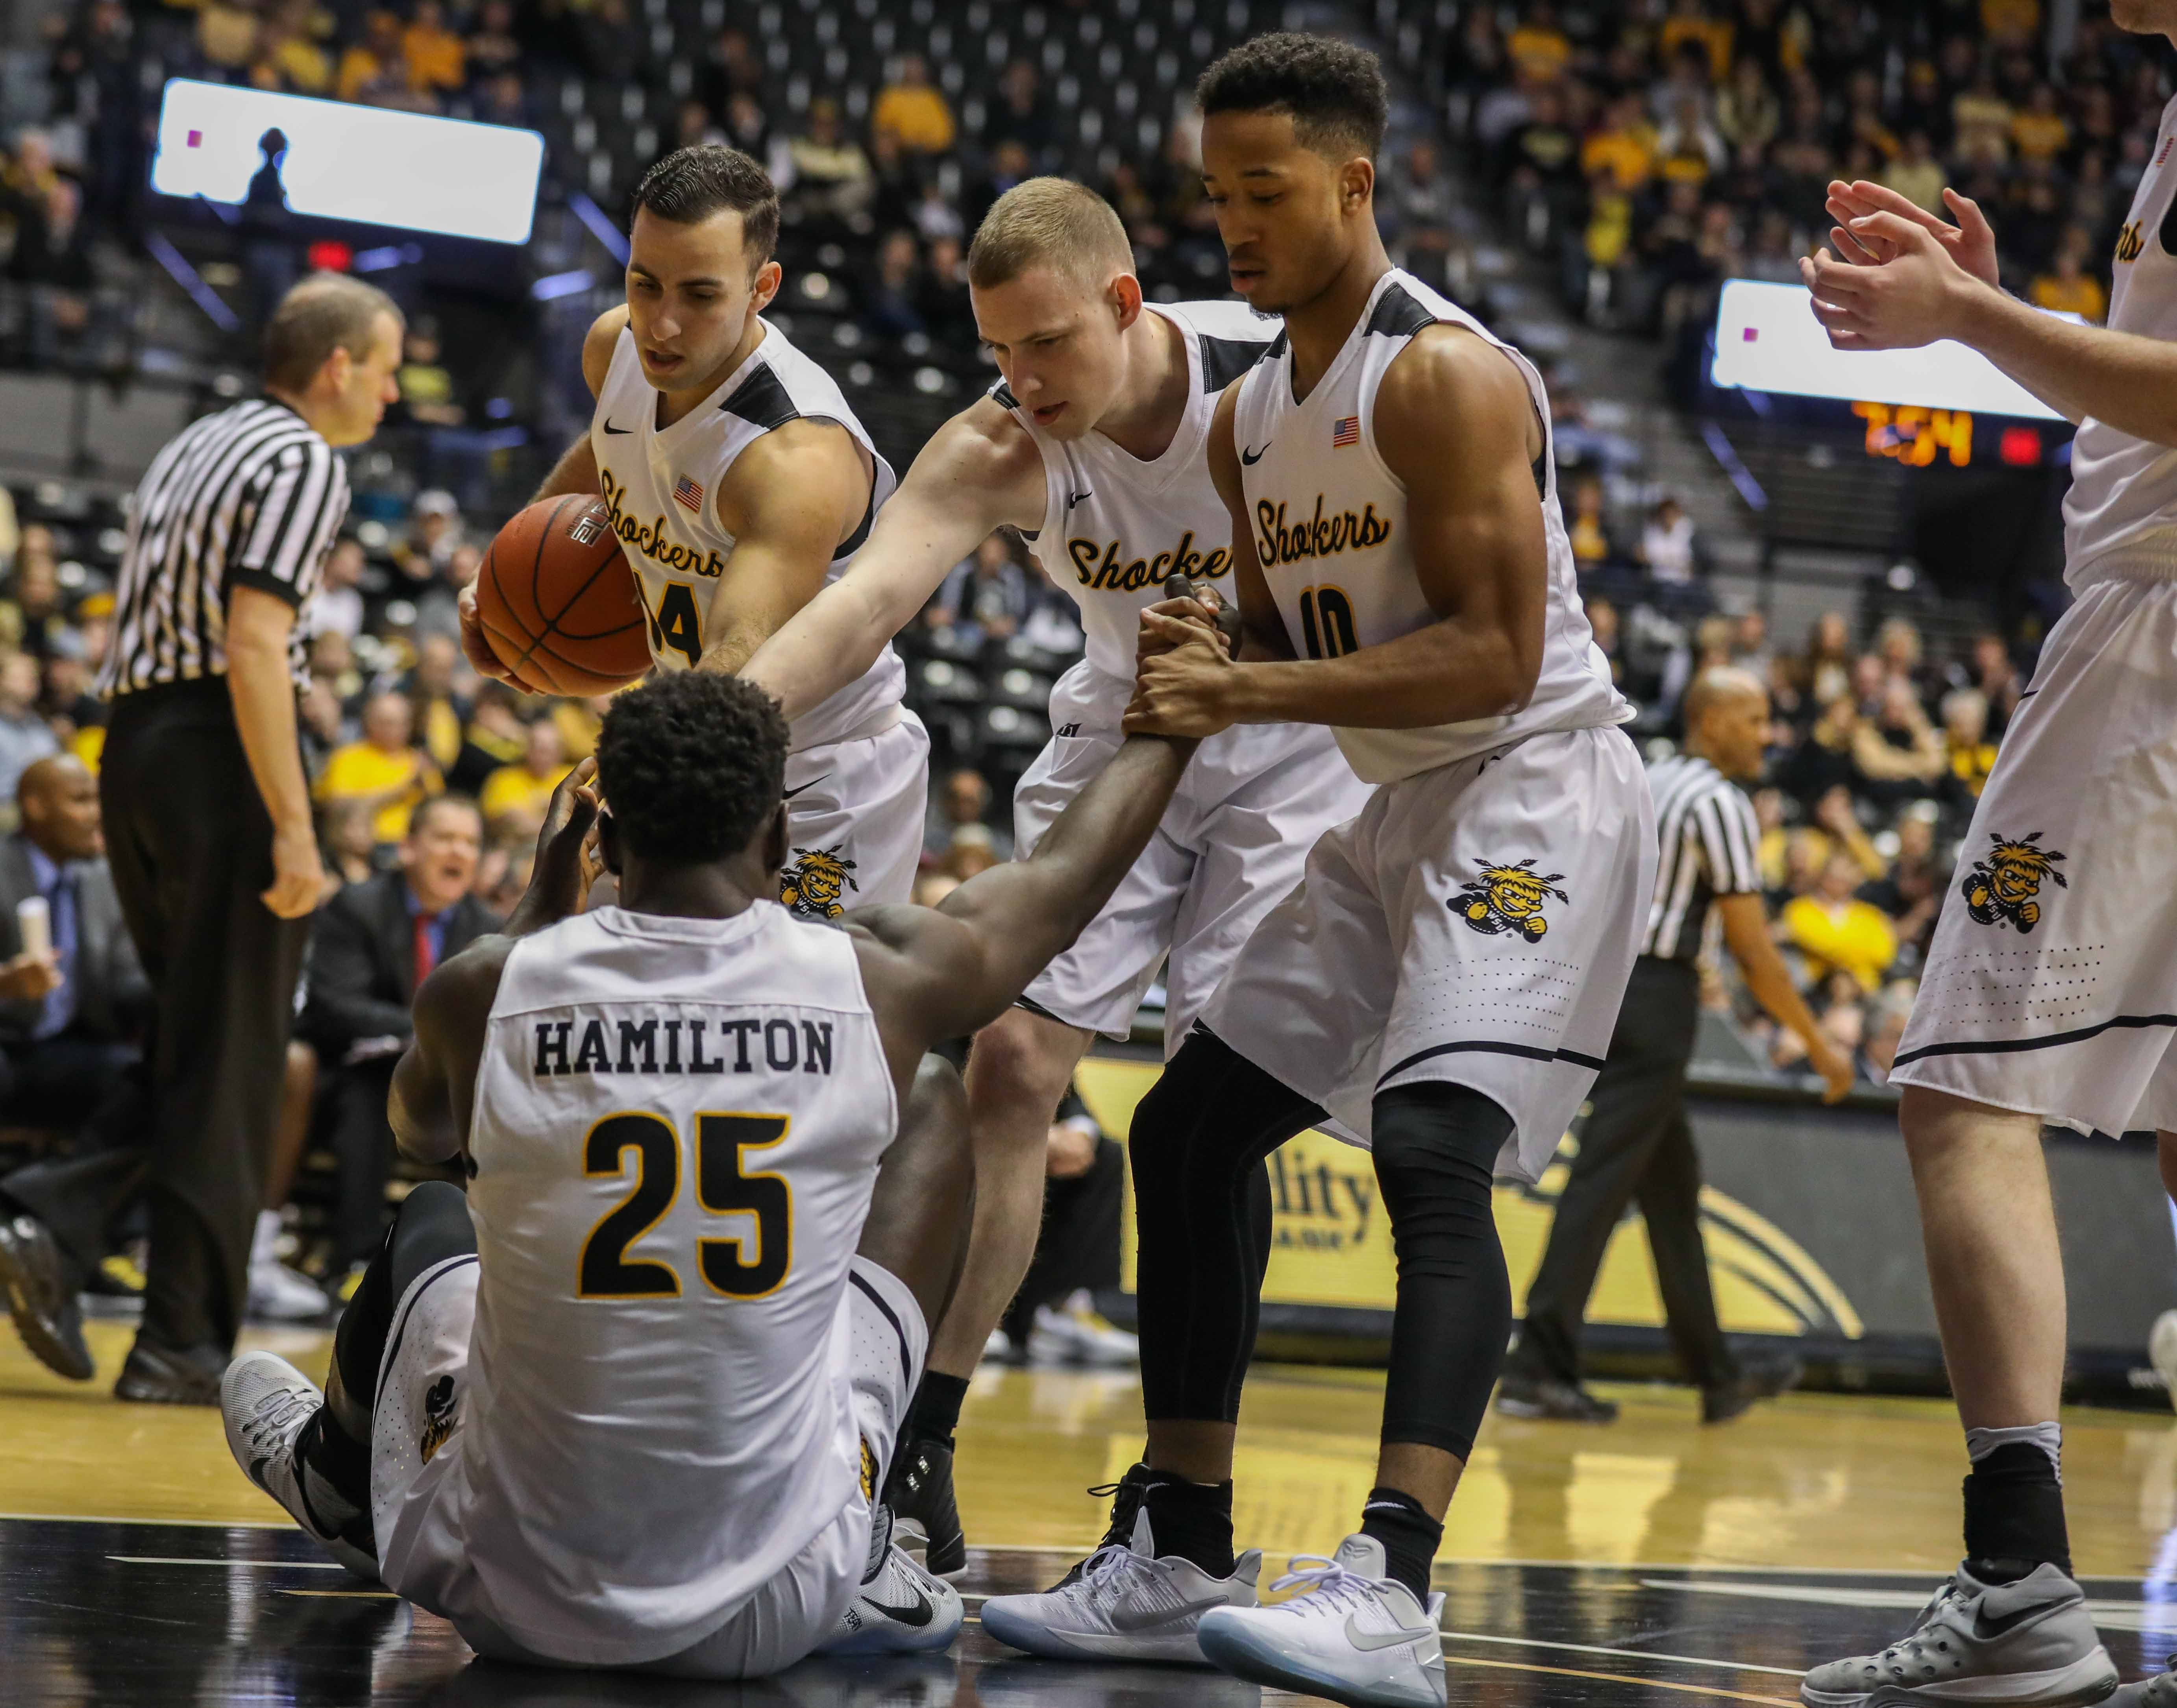 Teammates help Wichita State's Eric Hamilton (25) to his feet after he tangled with an Illinois State player.